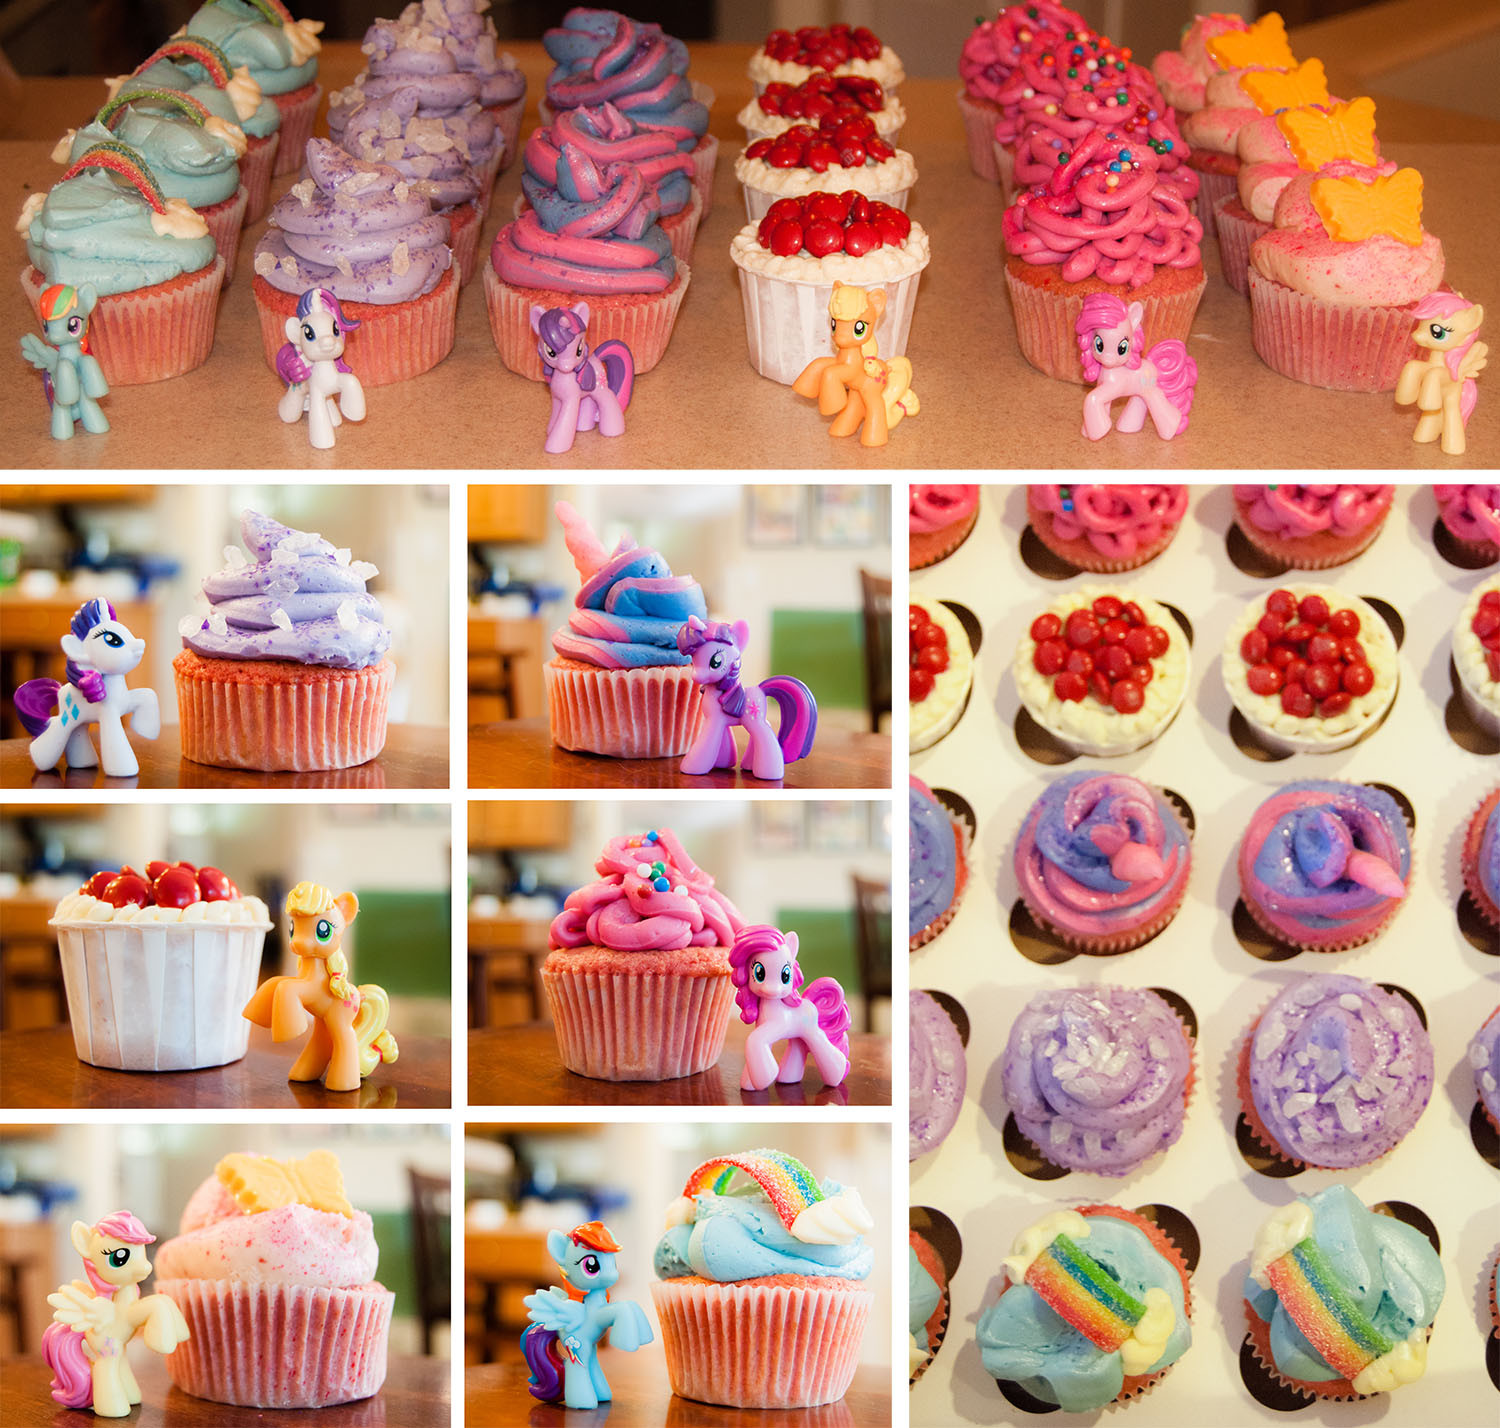 My Little Pony Cupcakes  My Little Pony Friendship is Magic Cupcakes